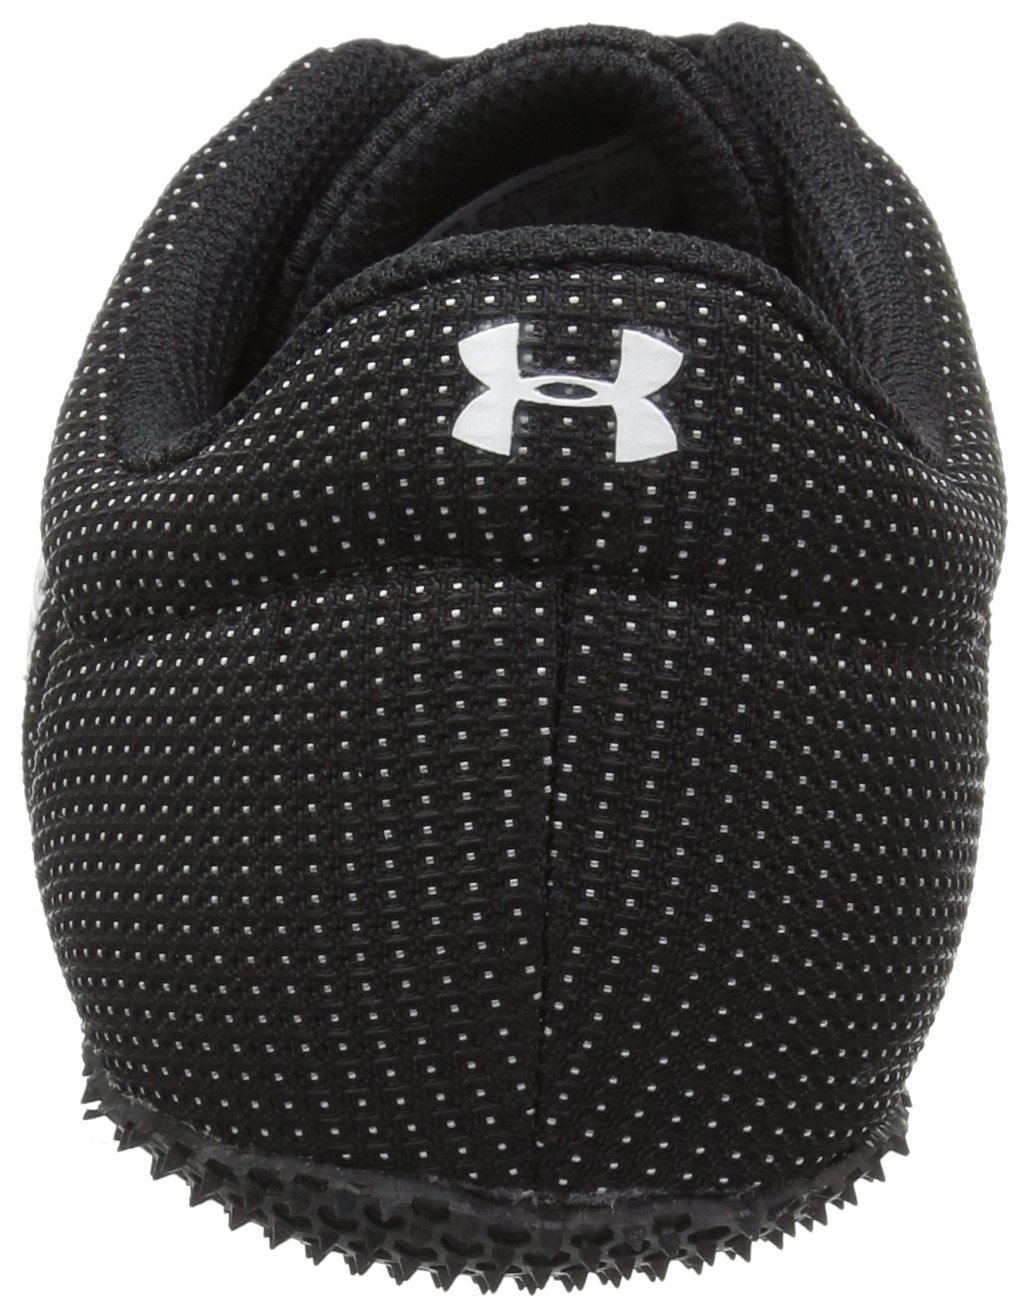 Under Armour Men's Kick Sprint Spike Running Shoe, White (100)/Black, 8 by Under Armour (Image #2)